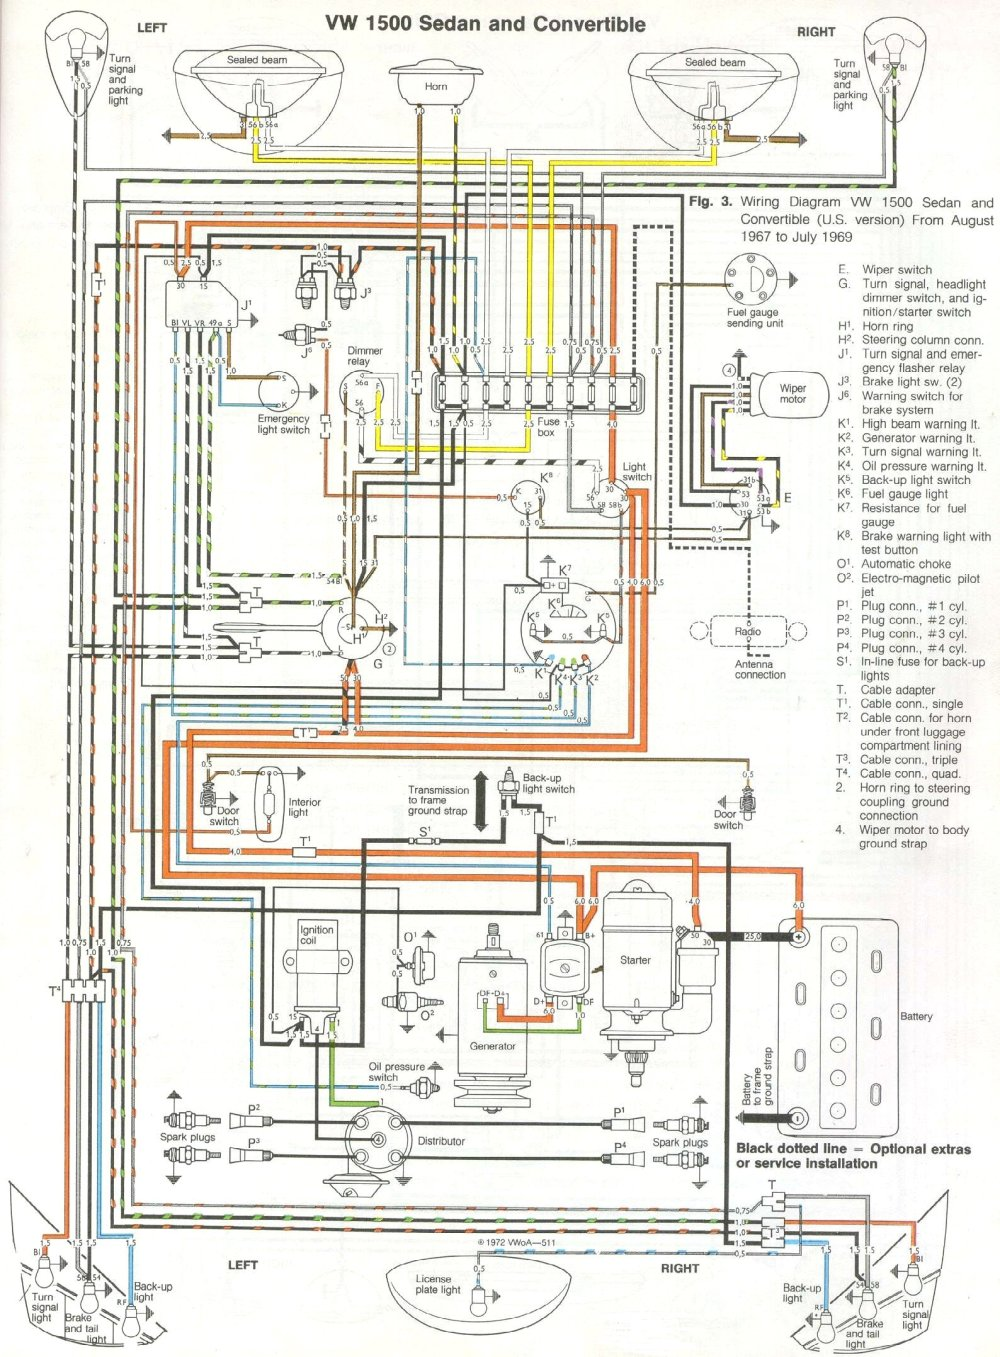 medium resolution of 1969 71 beetle wiring diagram thegoldenbug com 1969 vw beetle ignition coil wiring diagram 1969 vw beetle wiring diagram